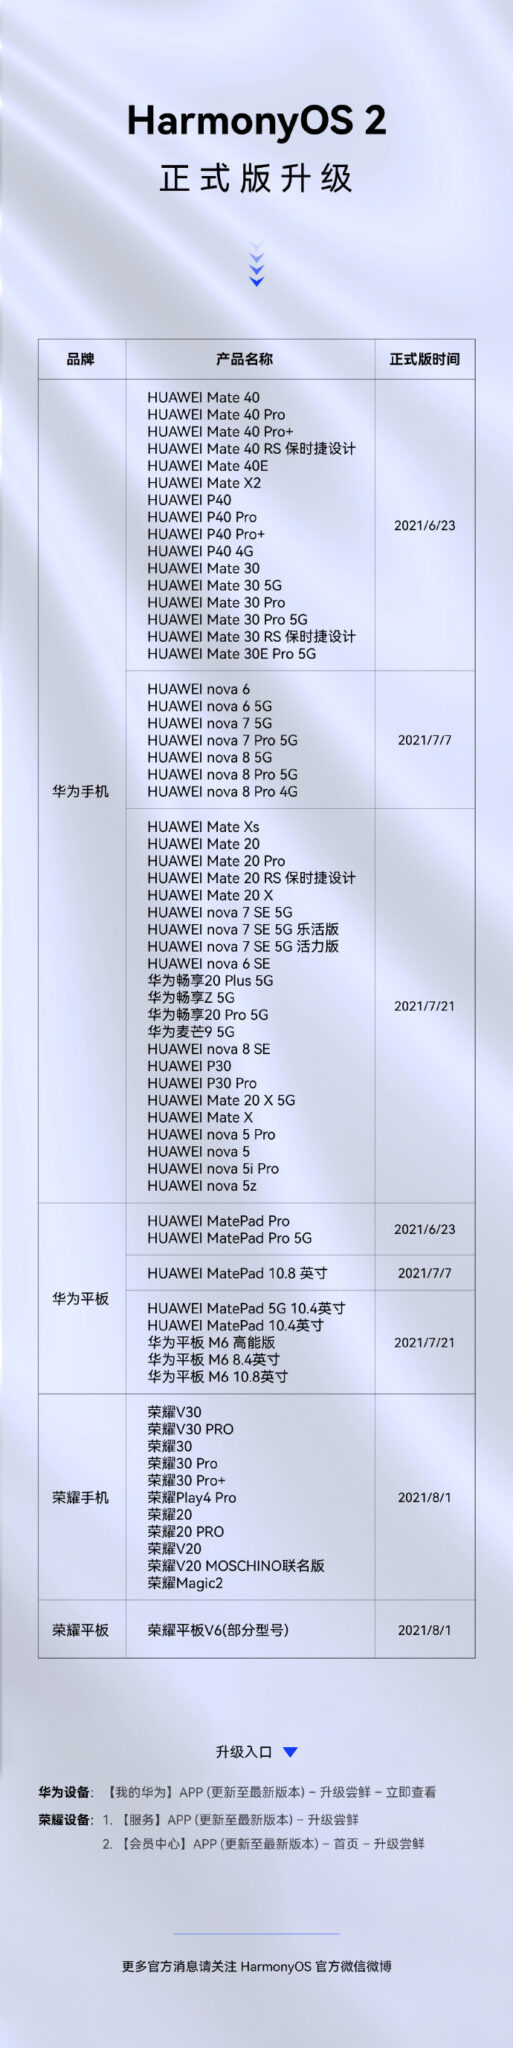 65 Huawei devices received HarmonyOS 2 stable update